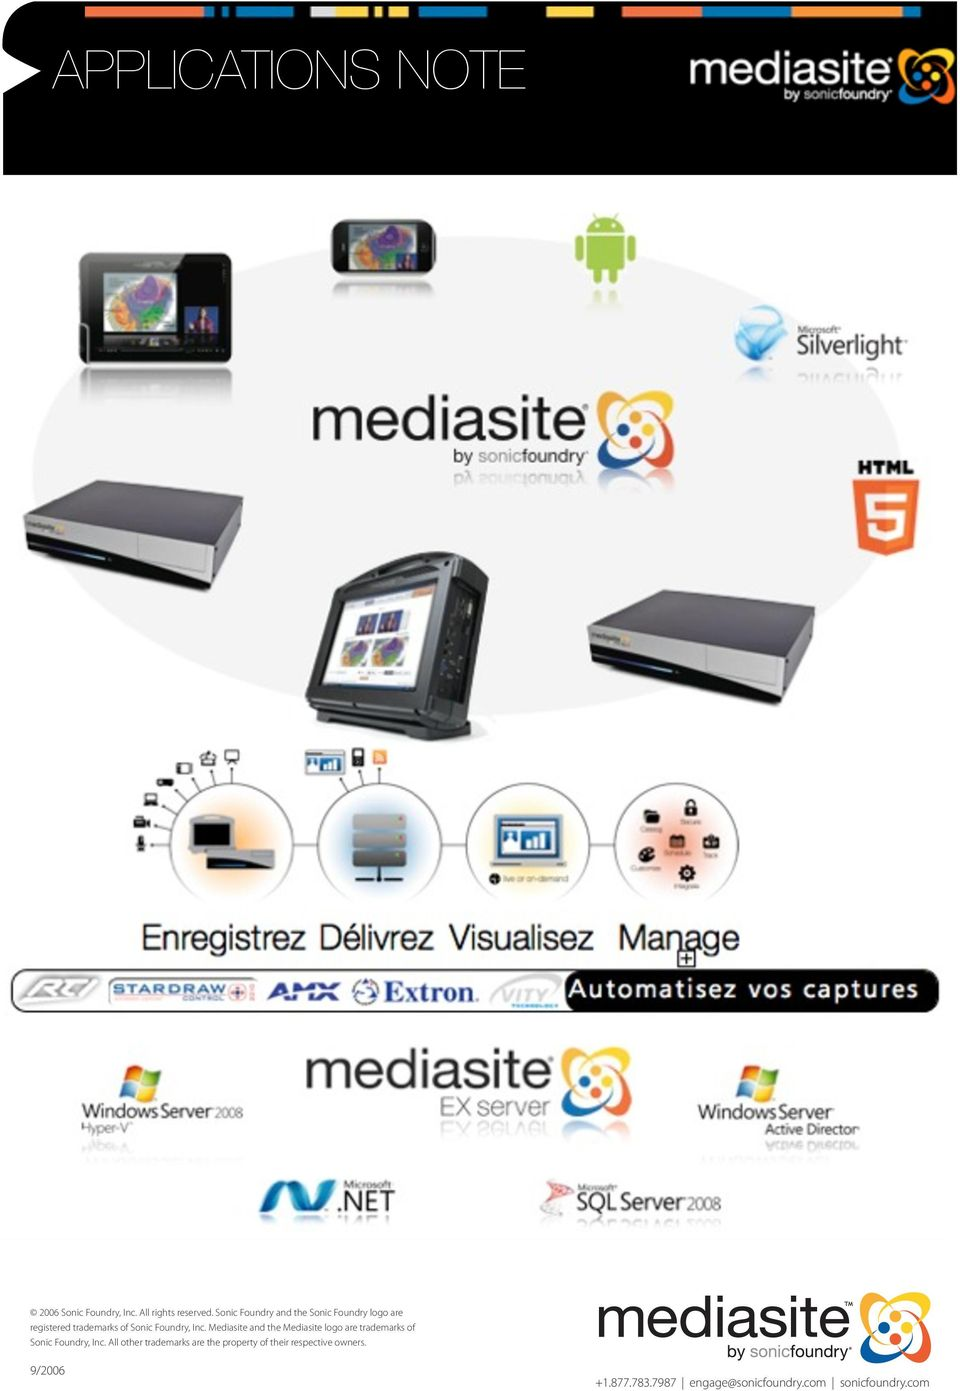 Mediasite External Data Access Service (EDAS) is a web services-based development tool that gives enterprise applications like your course management, learning management or enterprise content